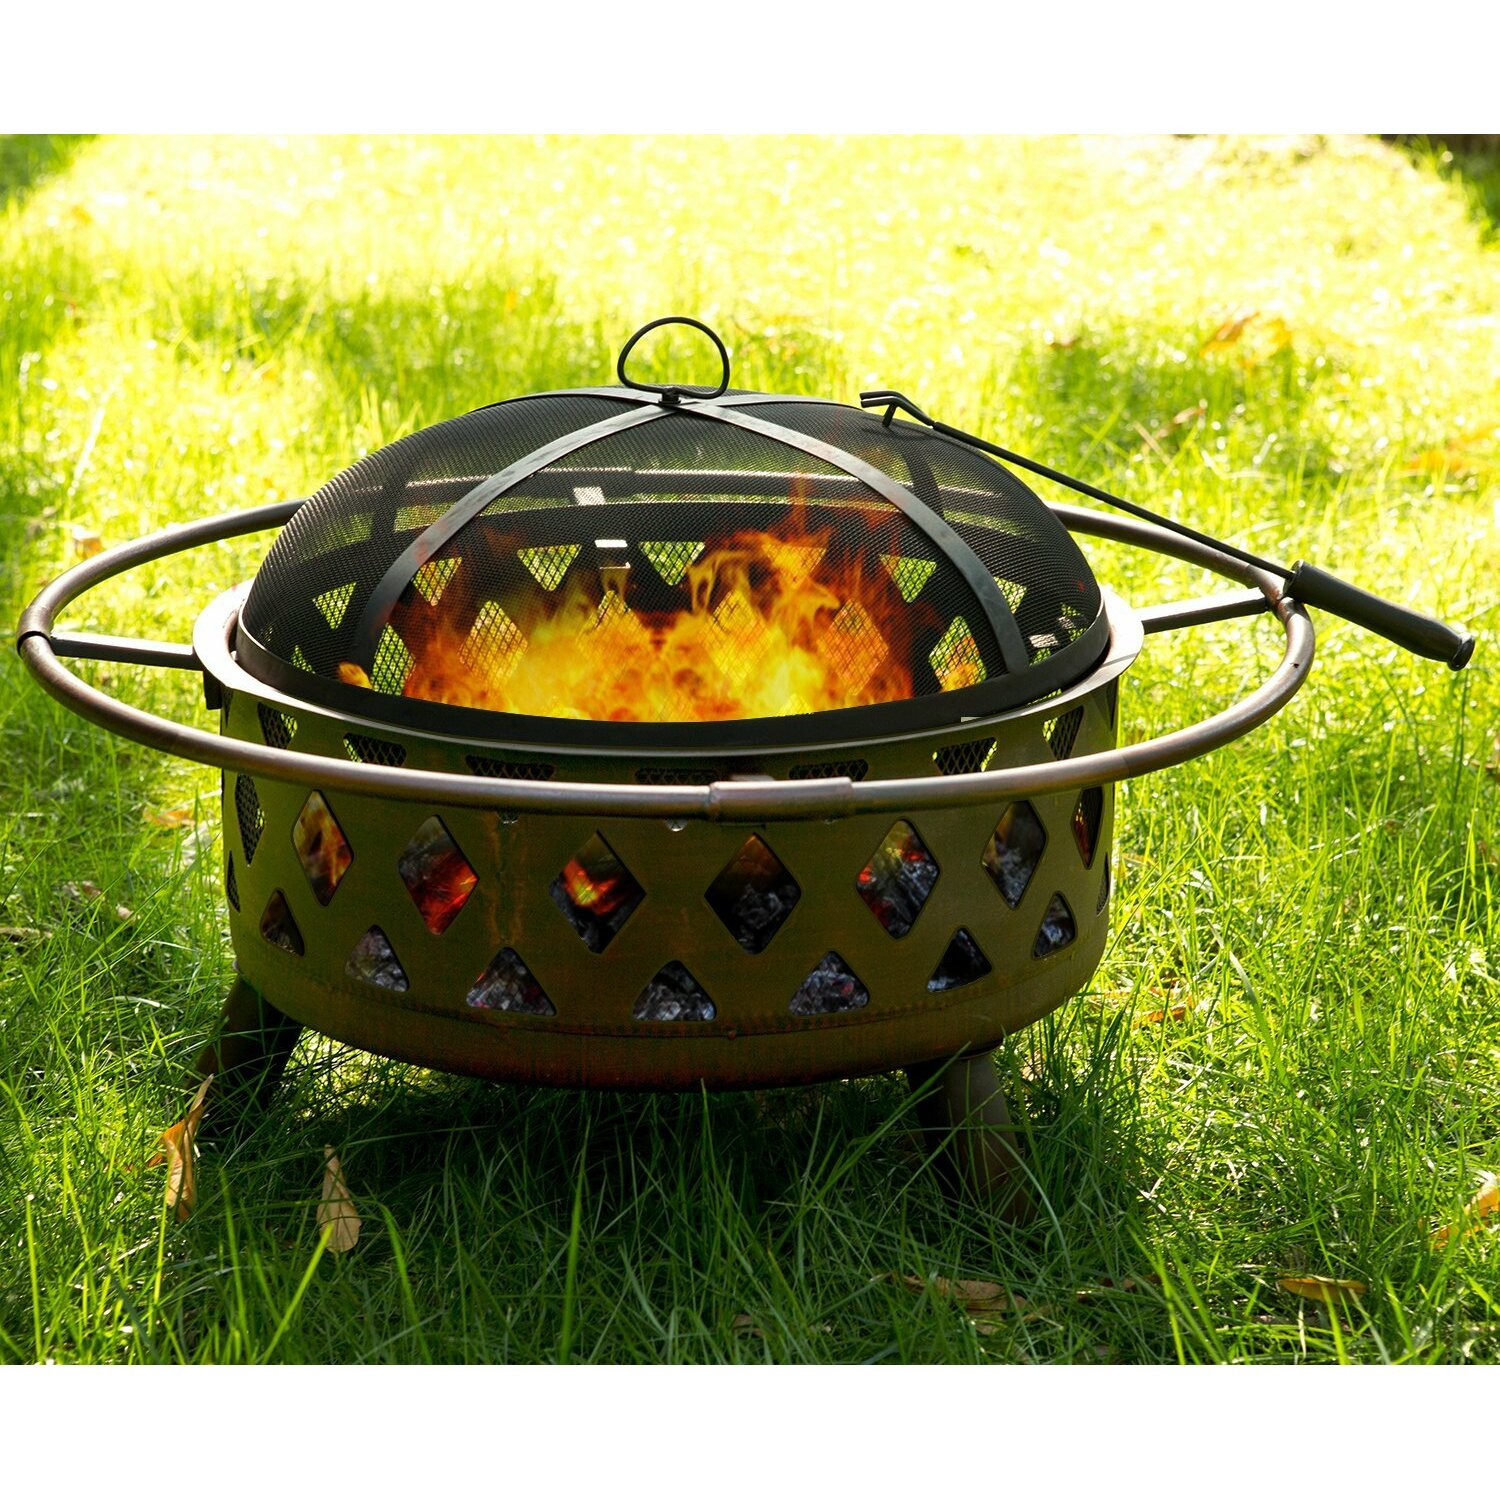 Merax Patio Outdoor Cast Iron Bowl Fire Pit Fire Bowl ...